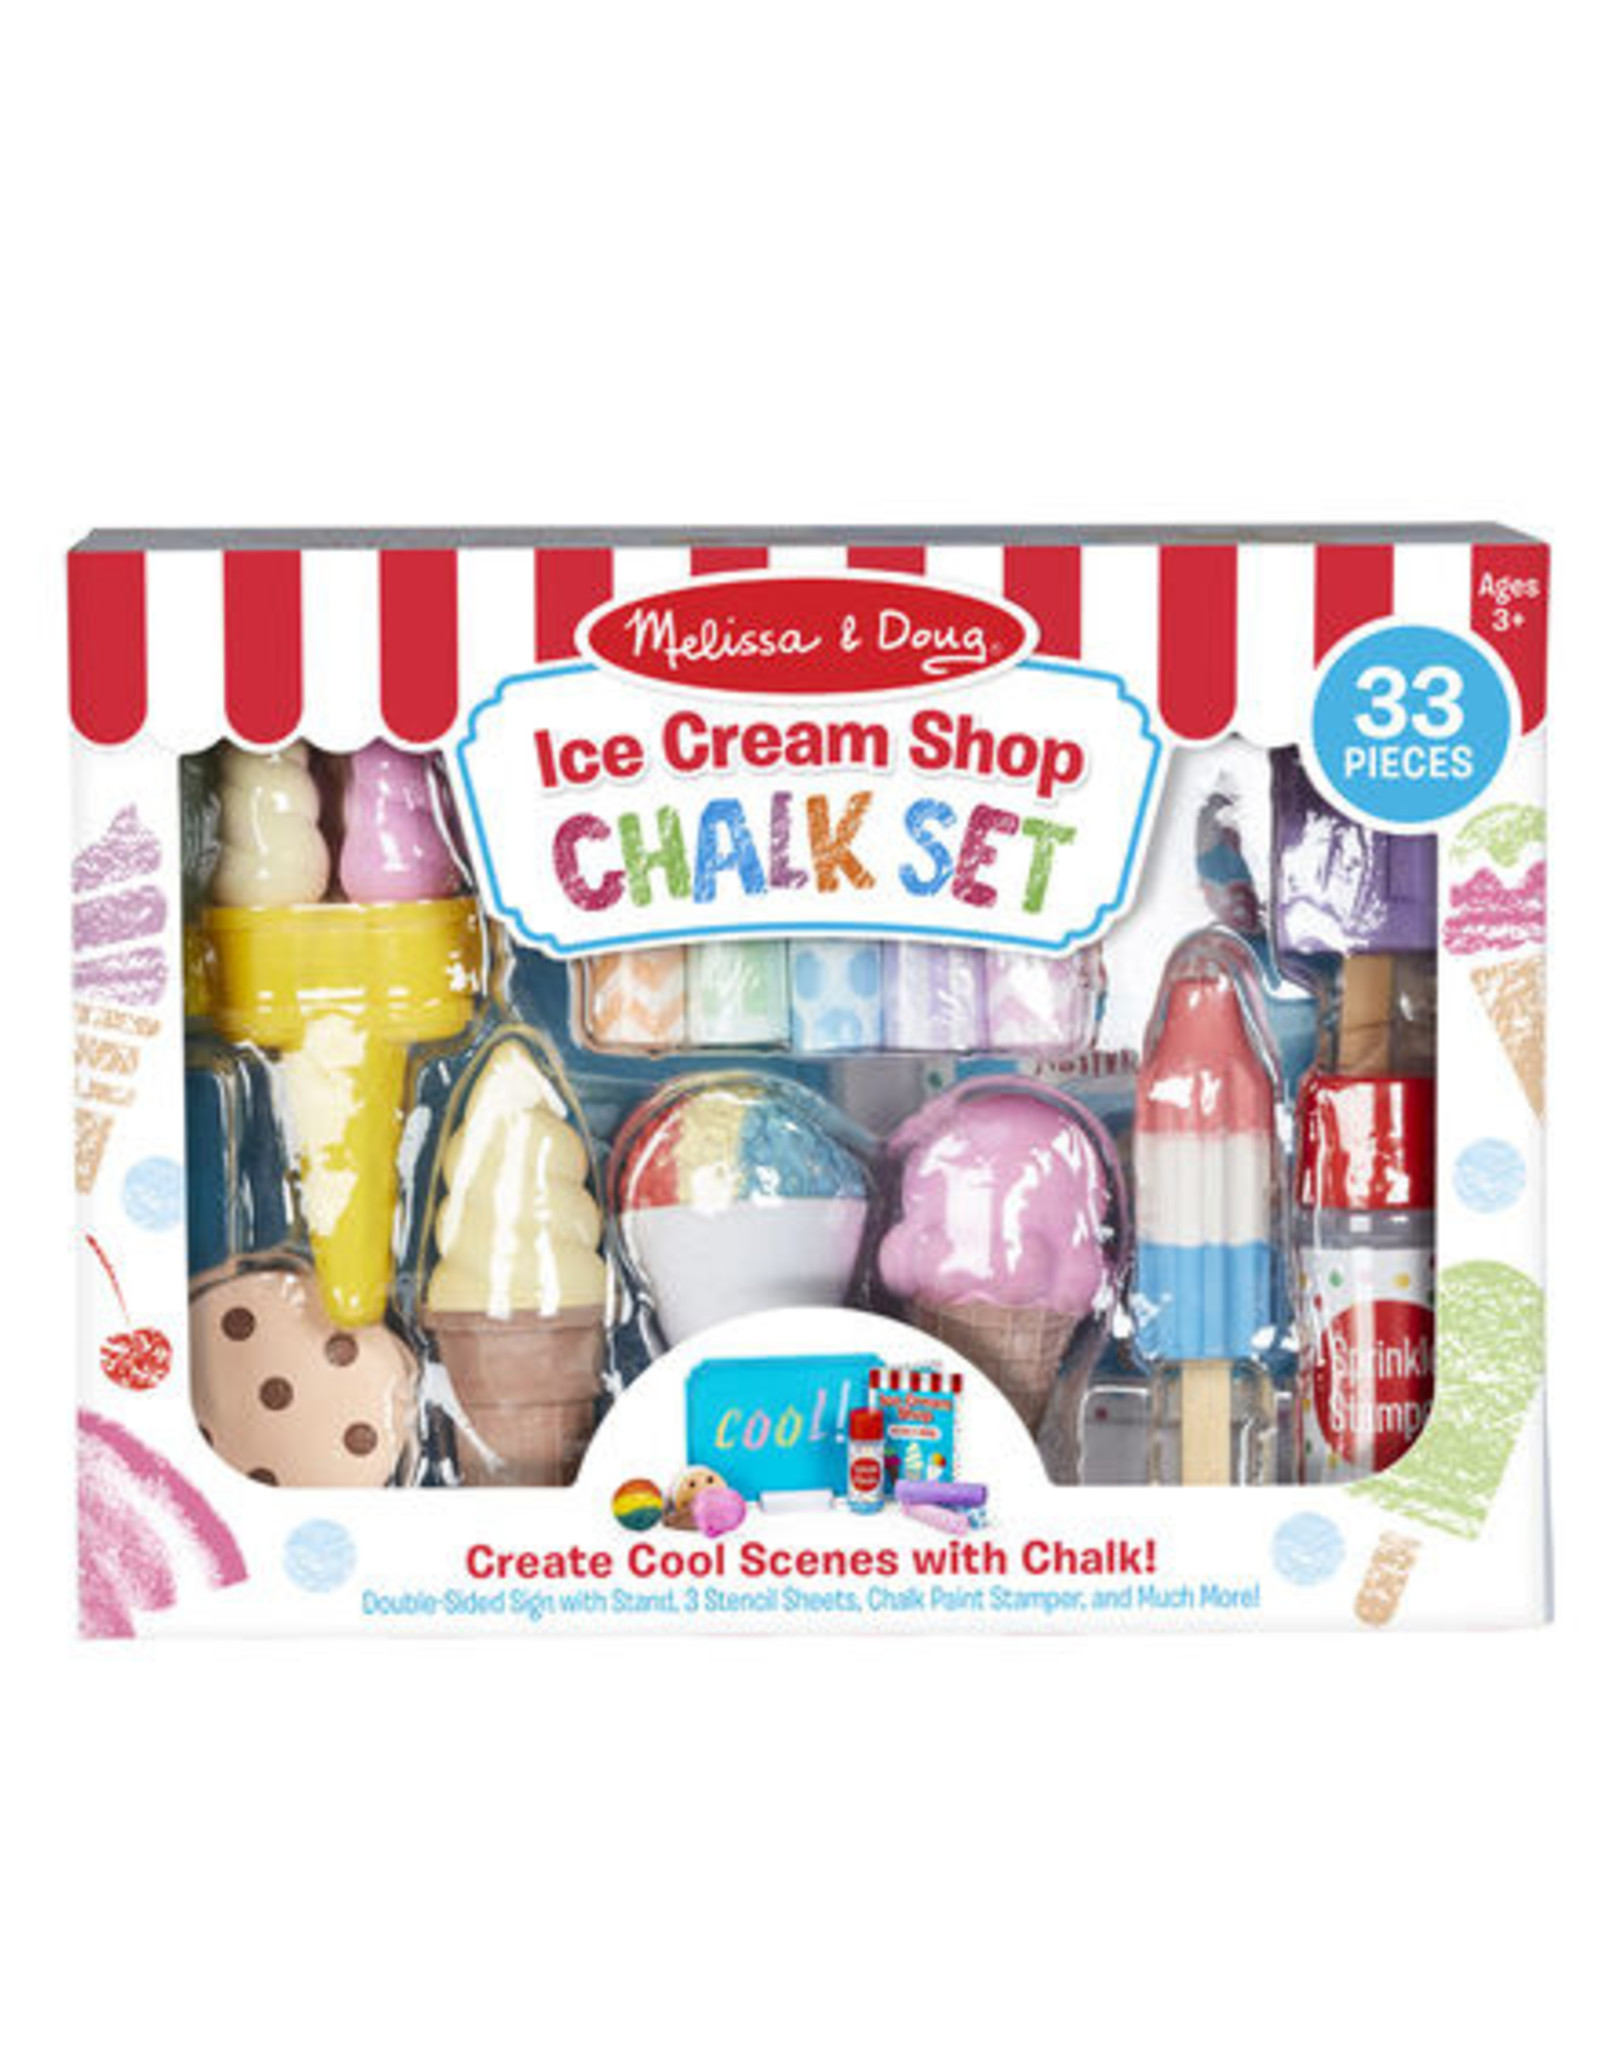 Melissa & Doug Ice Cream Shop Chalk Set